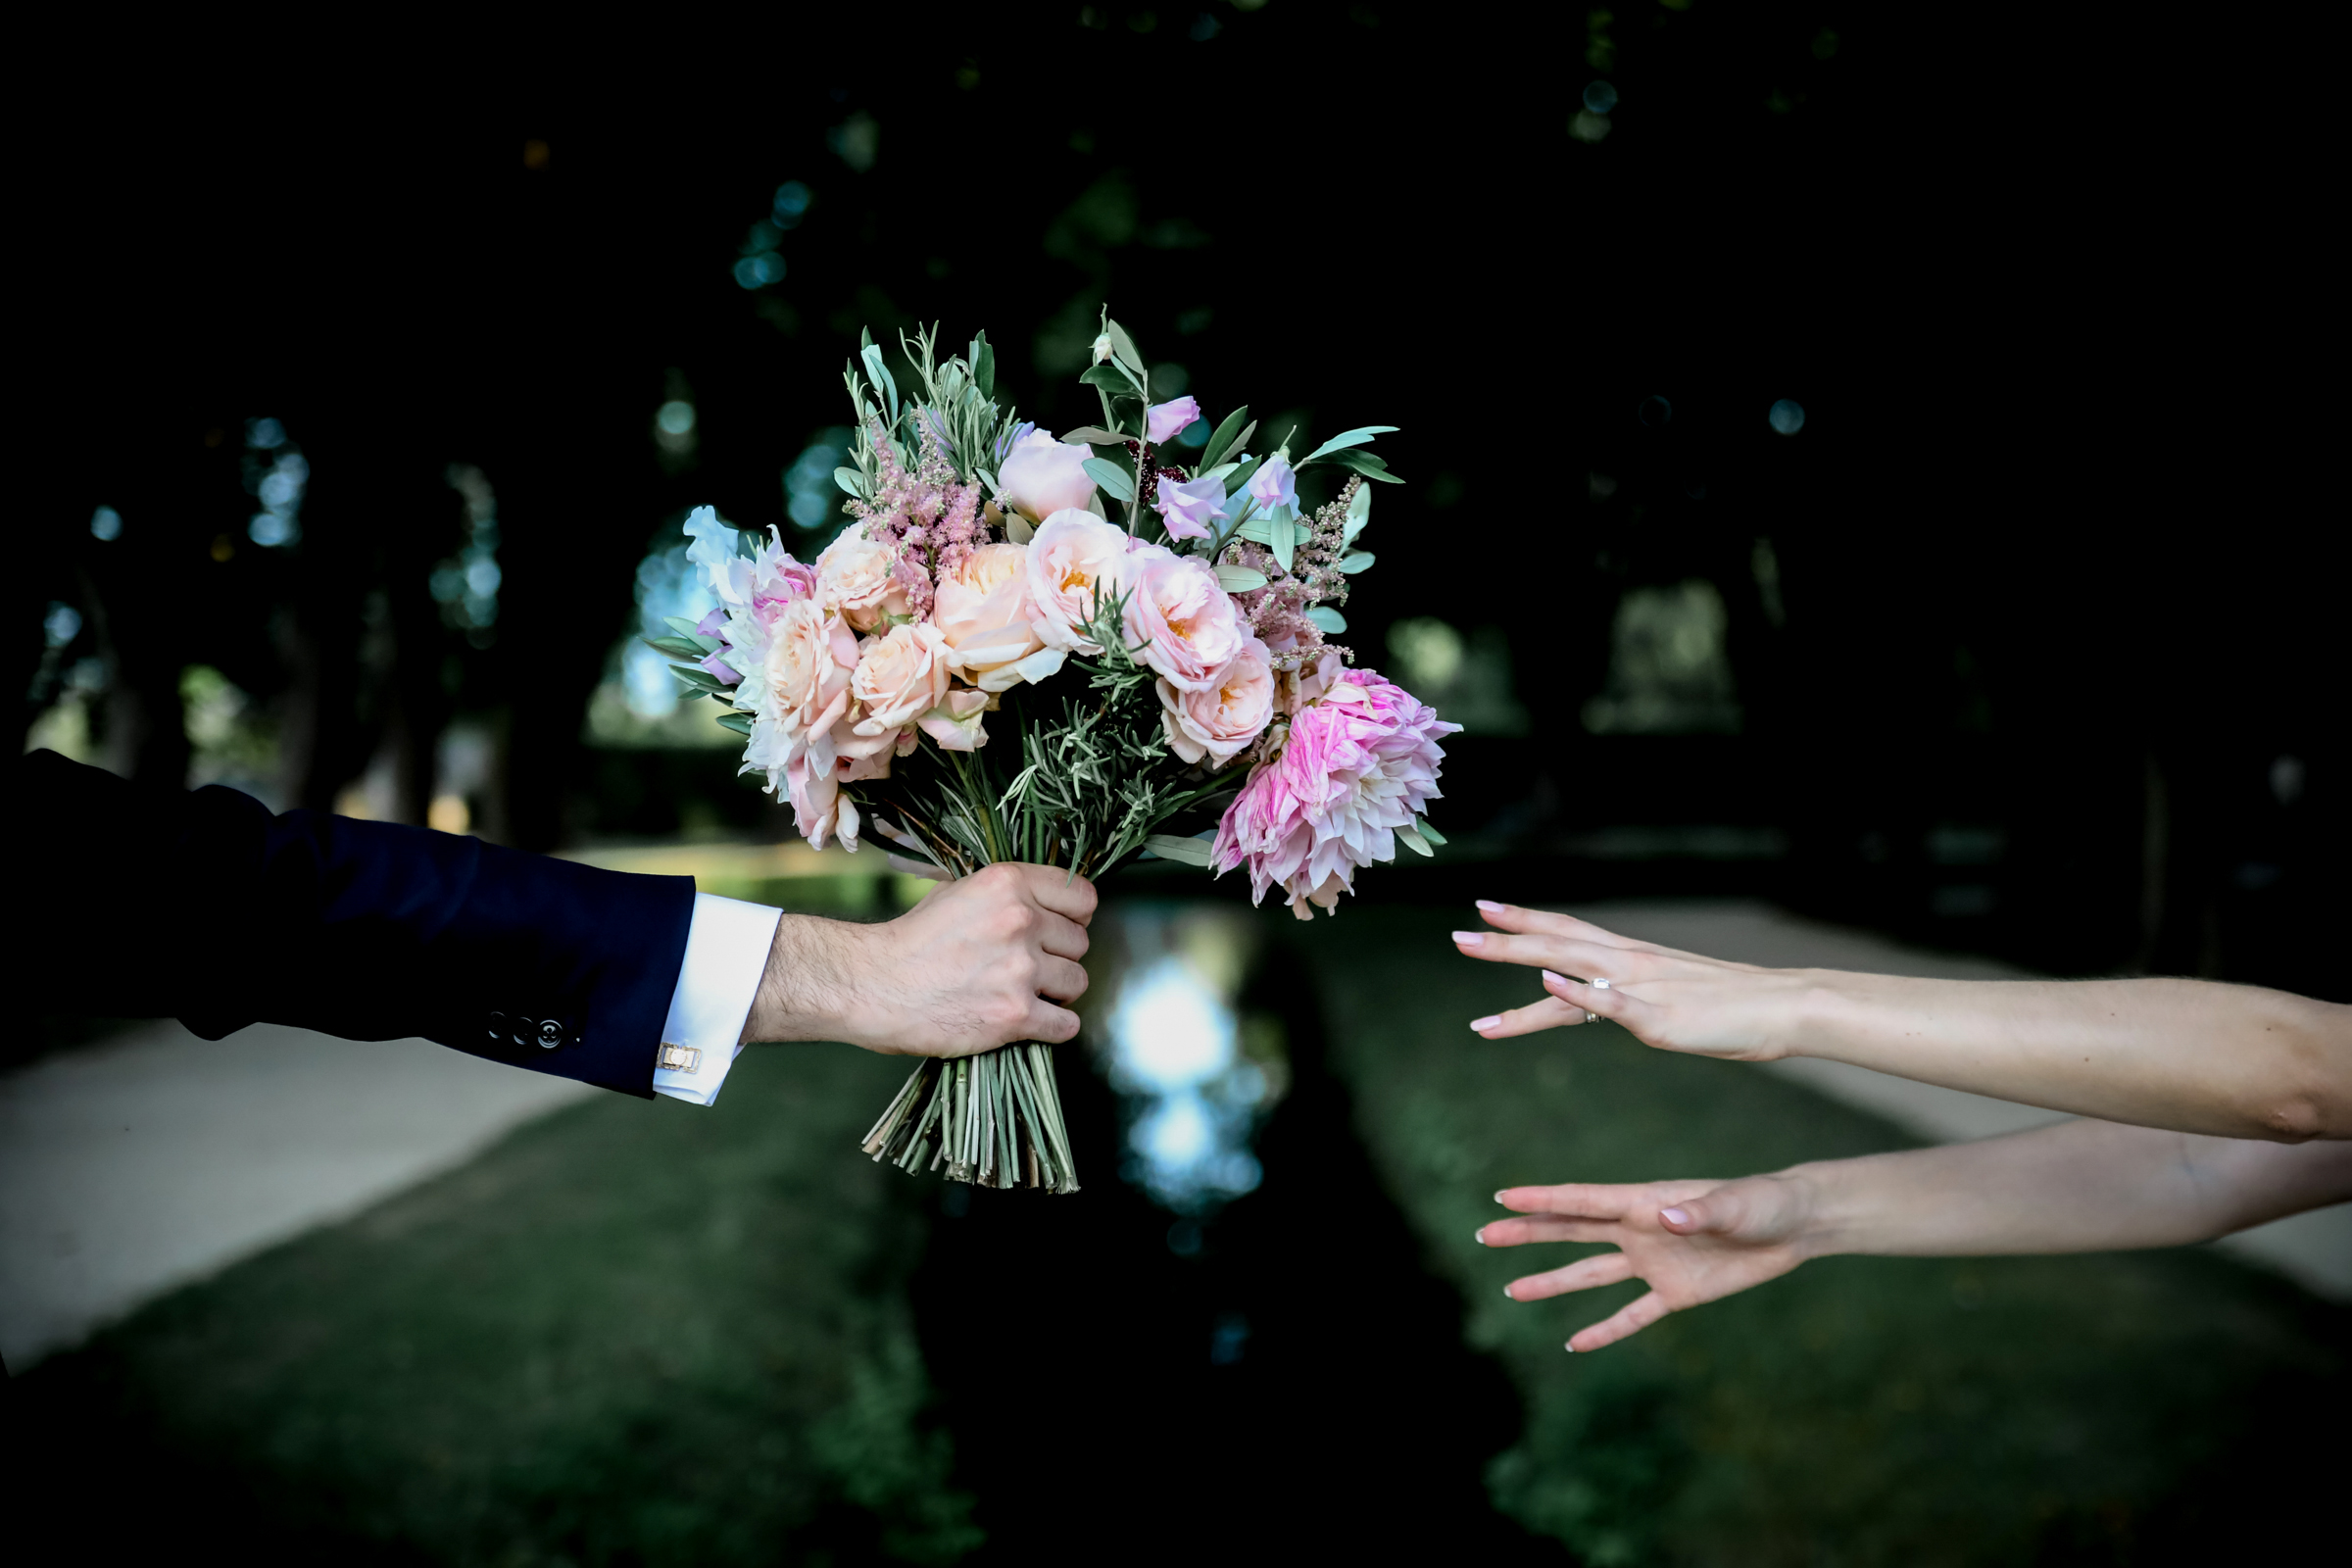 Handing over the bouquet - photo by Julien Laurent-Georges